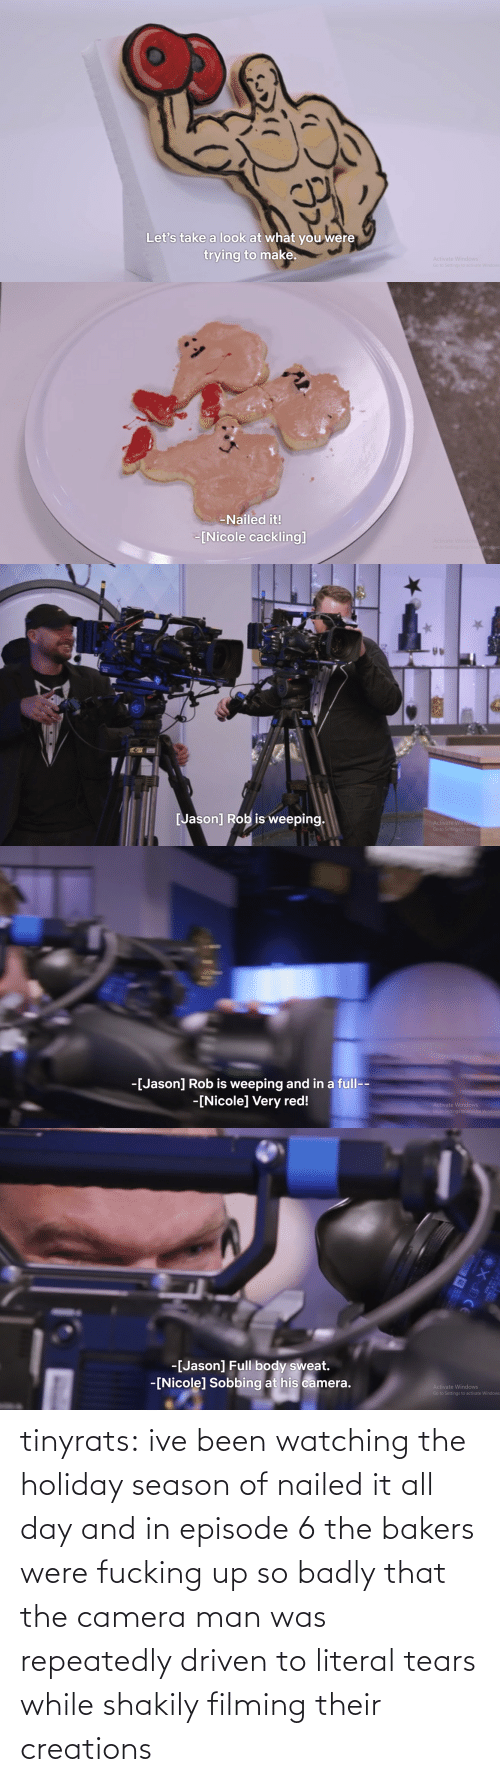 Target, Tumblr, and Blog: tinyrats:  ive been watching the holiday season of nailed it all day and in episode 6 the bakers were fucking up so badly that the camera man was repeatedly driven to literal tears while shakily filming their creations